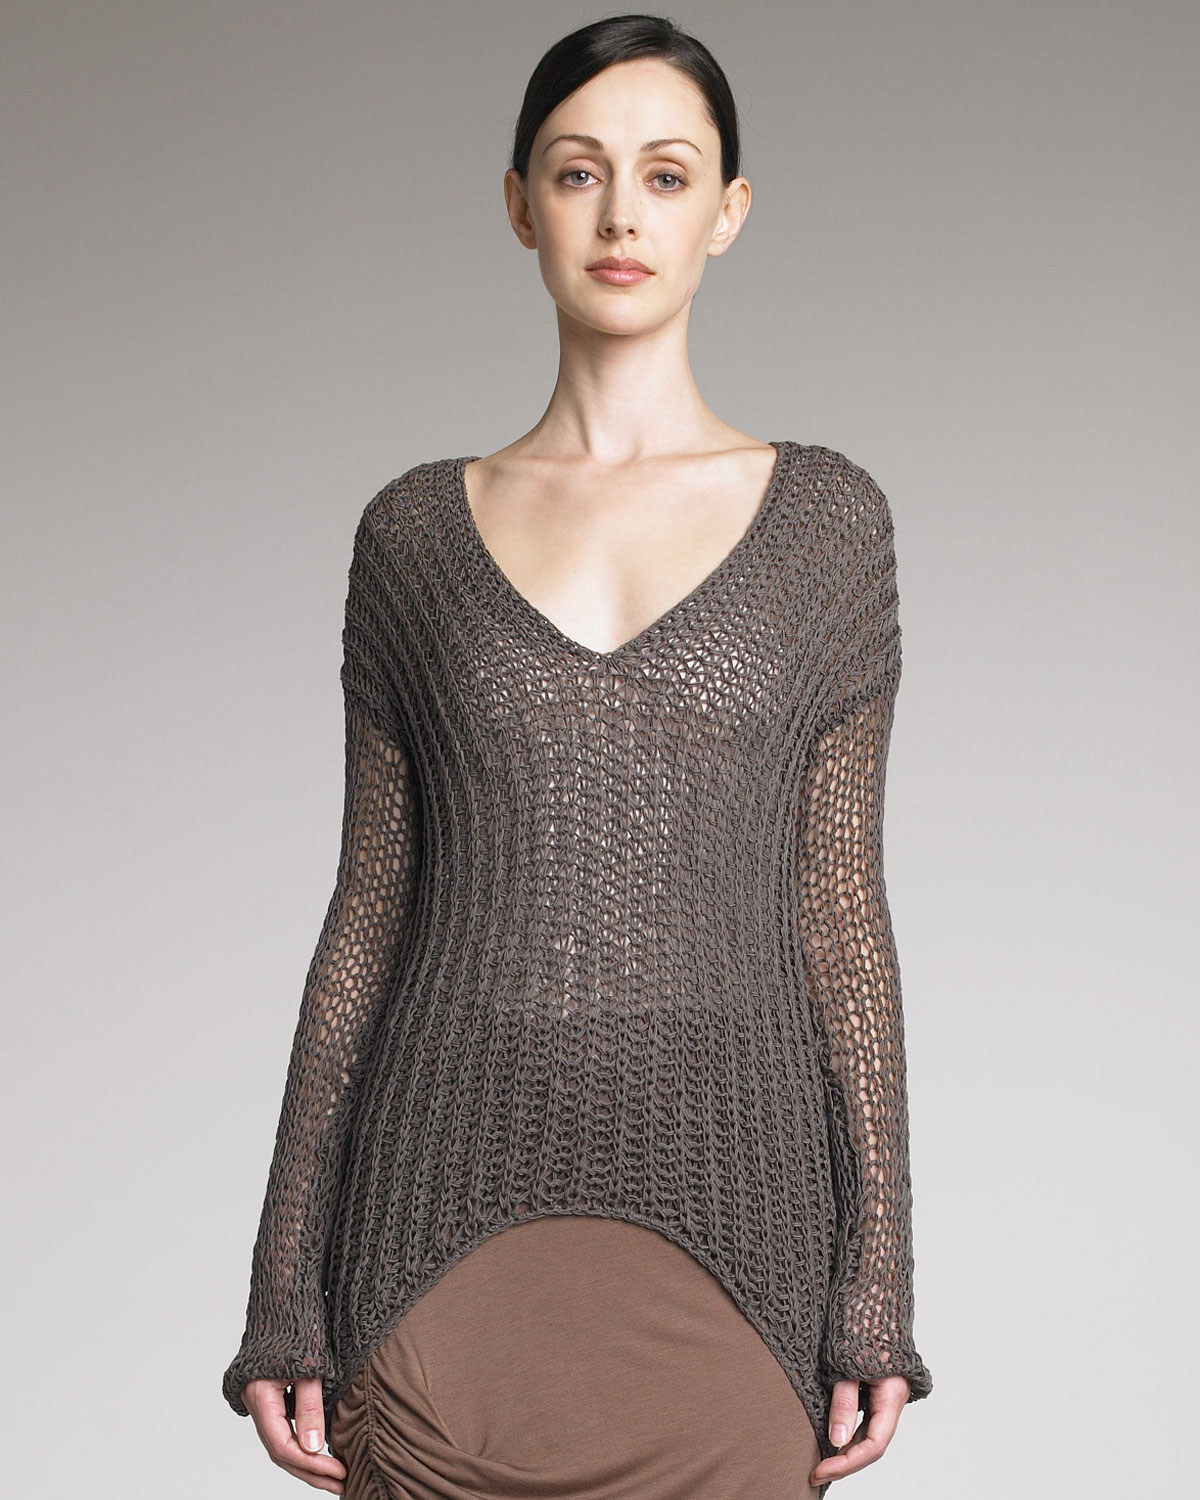 Helmut lang Sheer Knit Longsleeve Sweater in Gray | Lyst